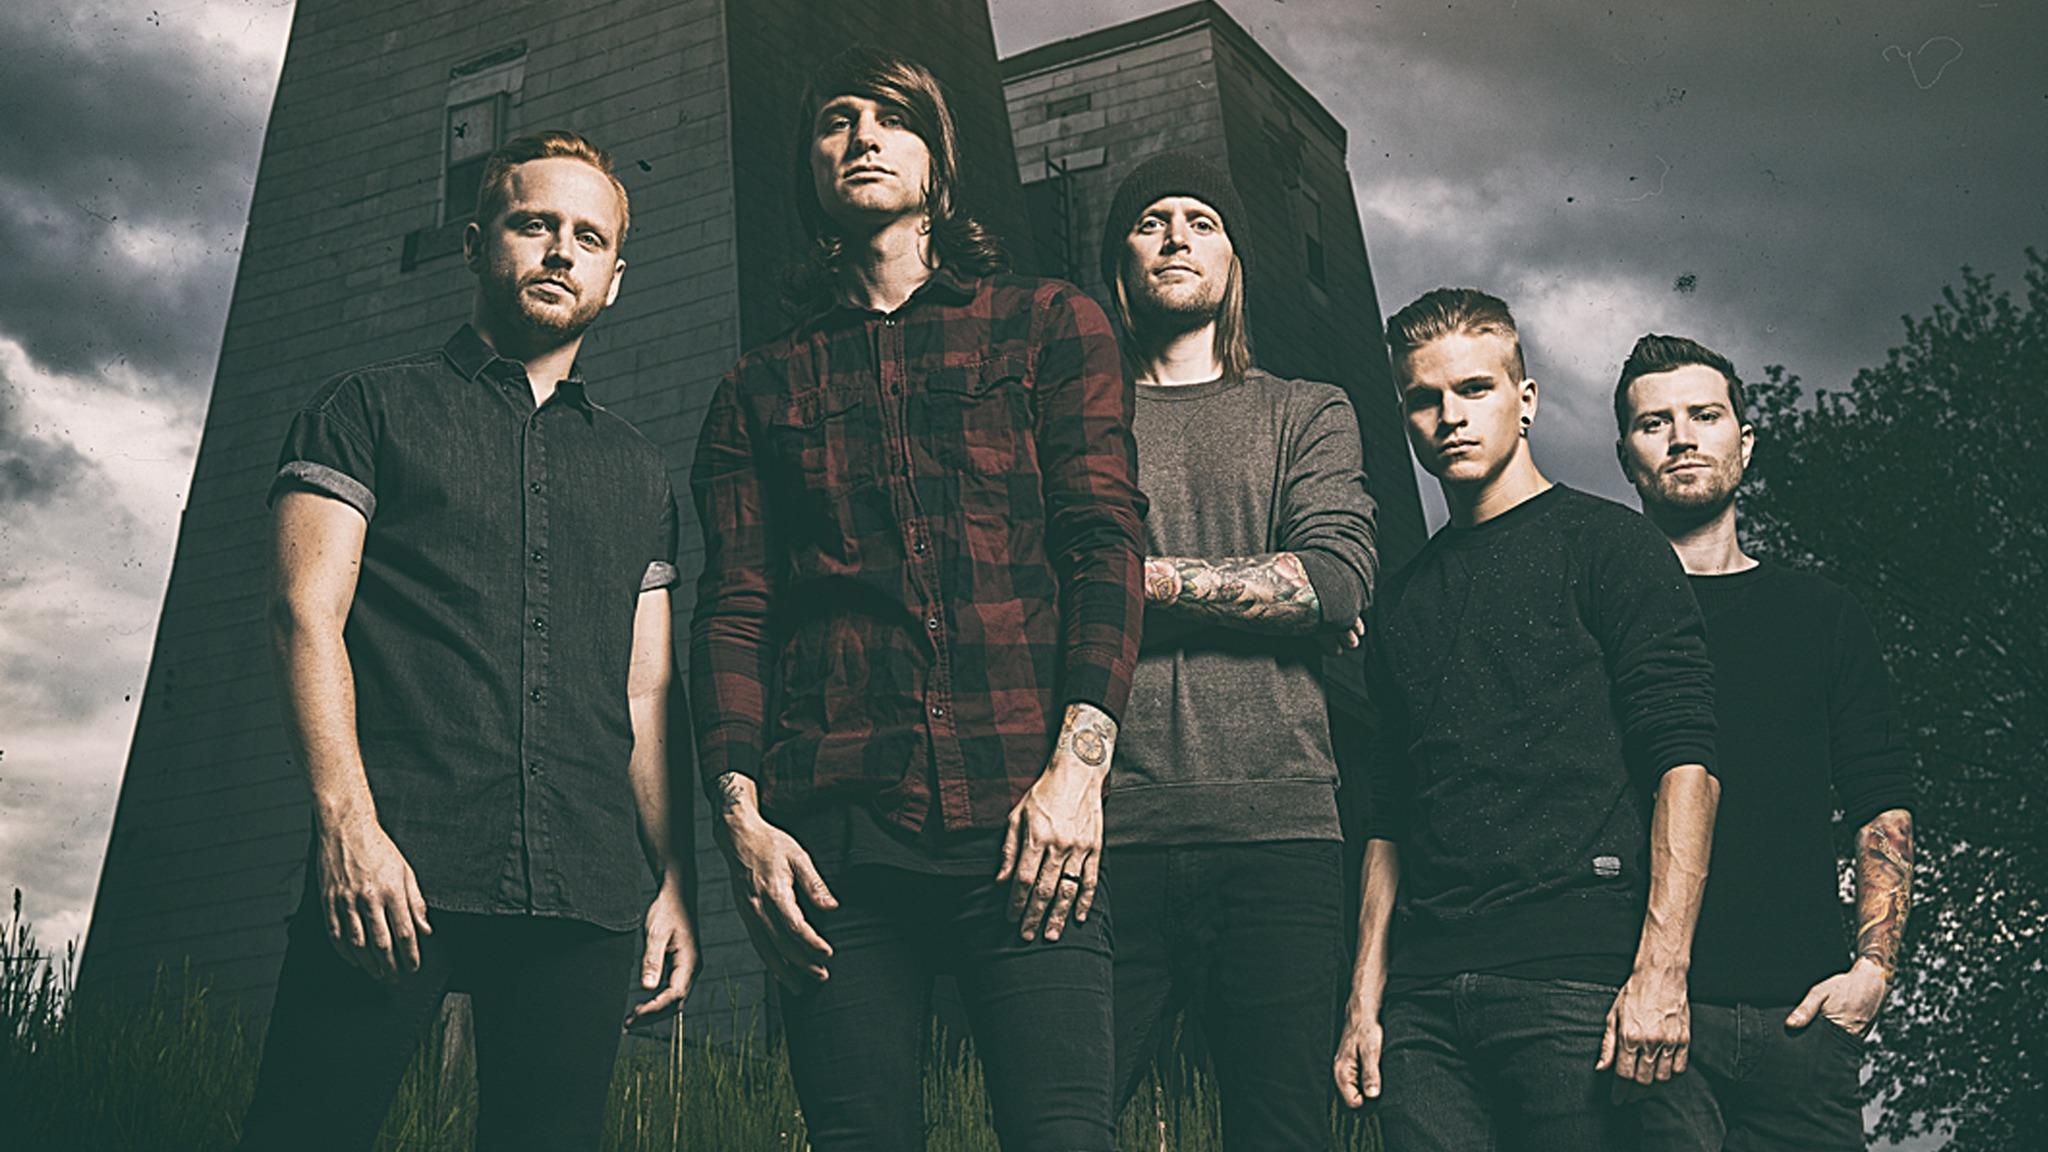 Blessthefall, the Word Alive / Ded , Thousand Below